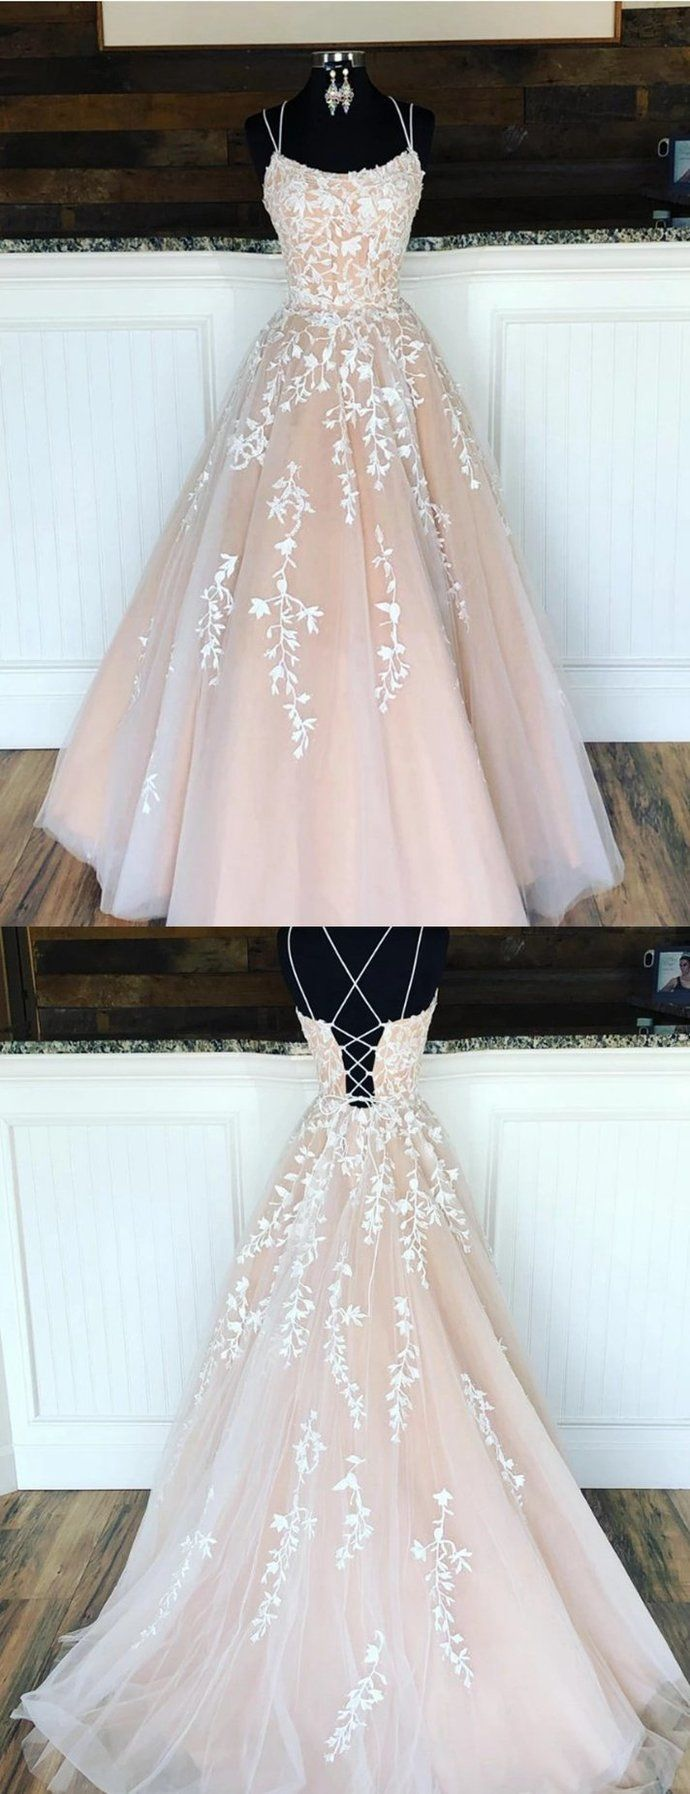 Photo of Champagner Ballkleider Langes Abendkleid | cutedressy #C …